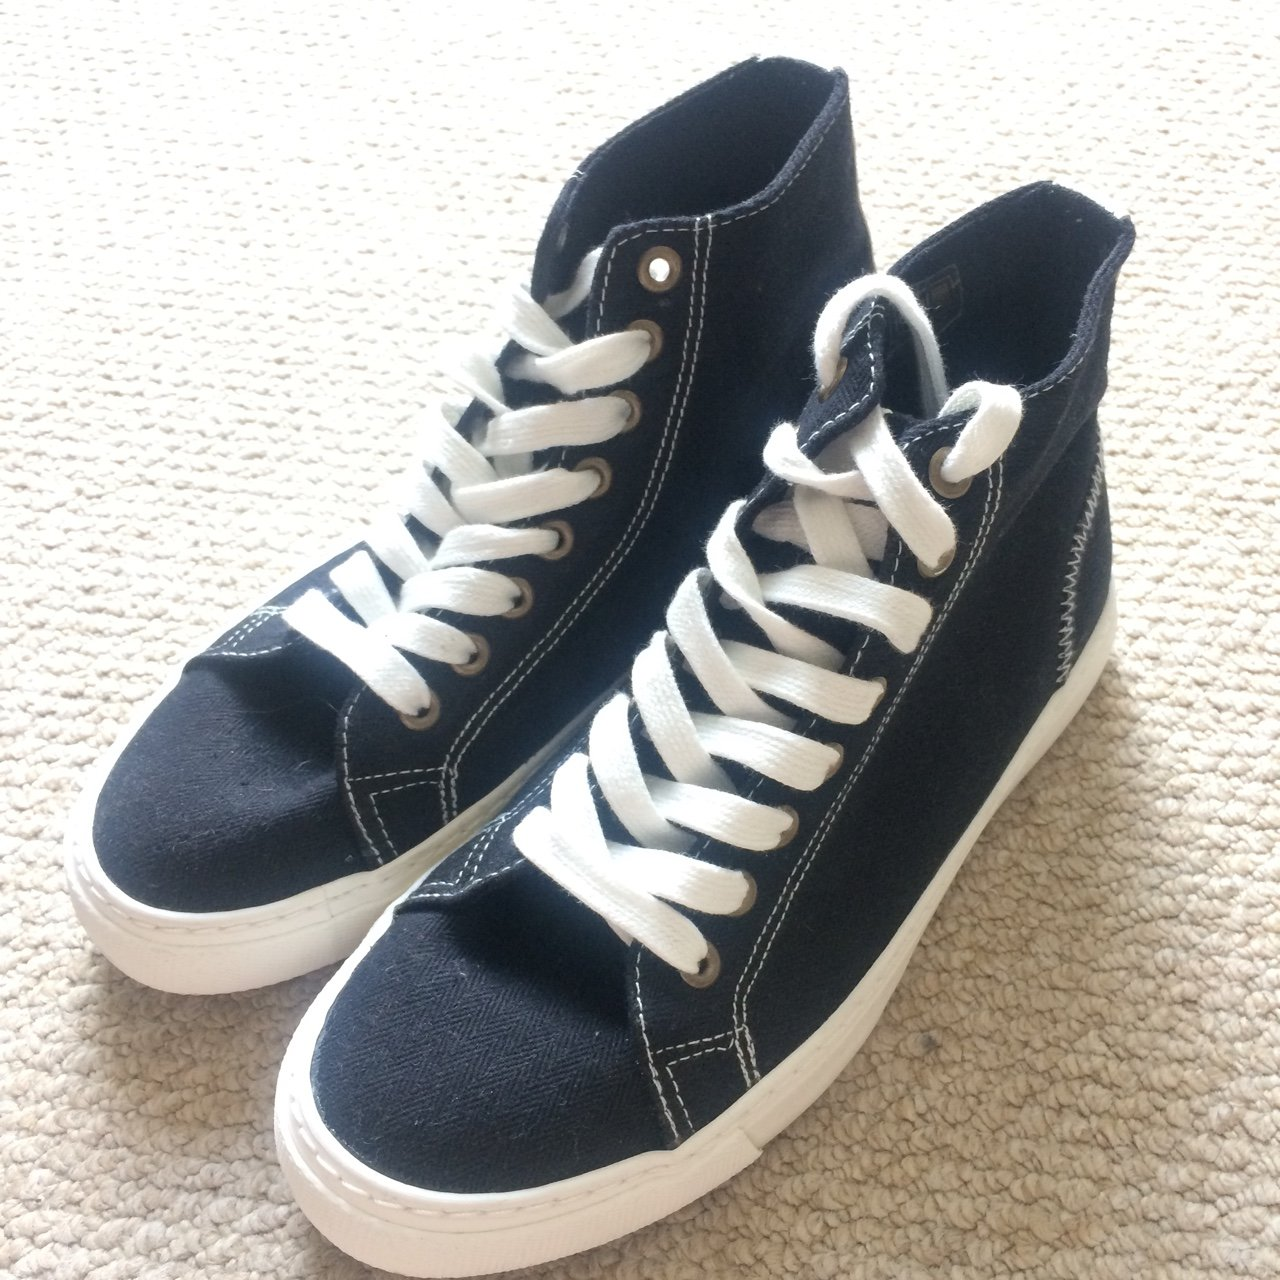 hot new products half off outlet High top trainers from ASOS. Black canvas, white stitching. - Depop